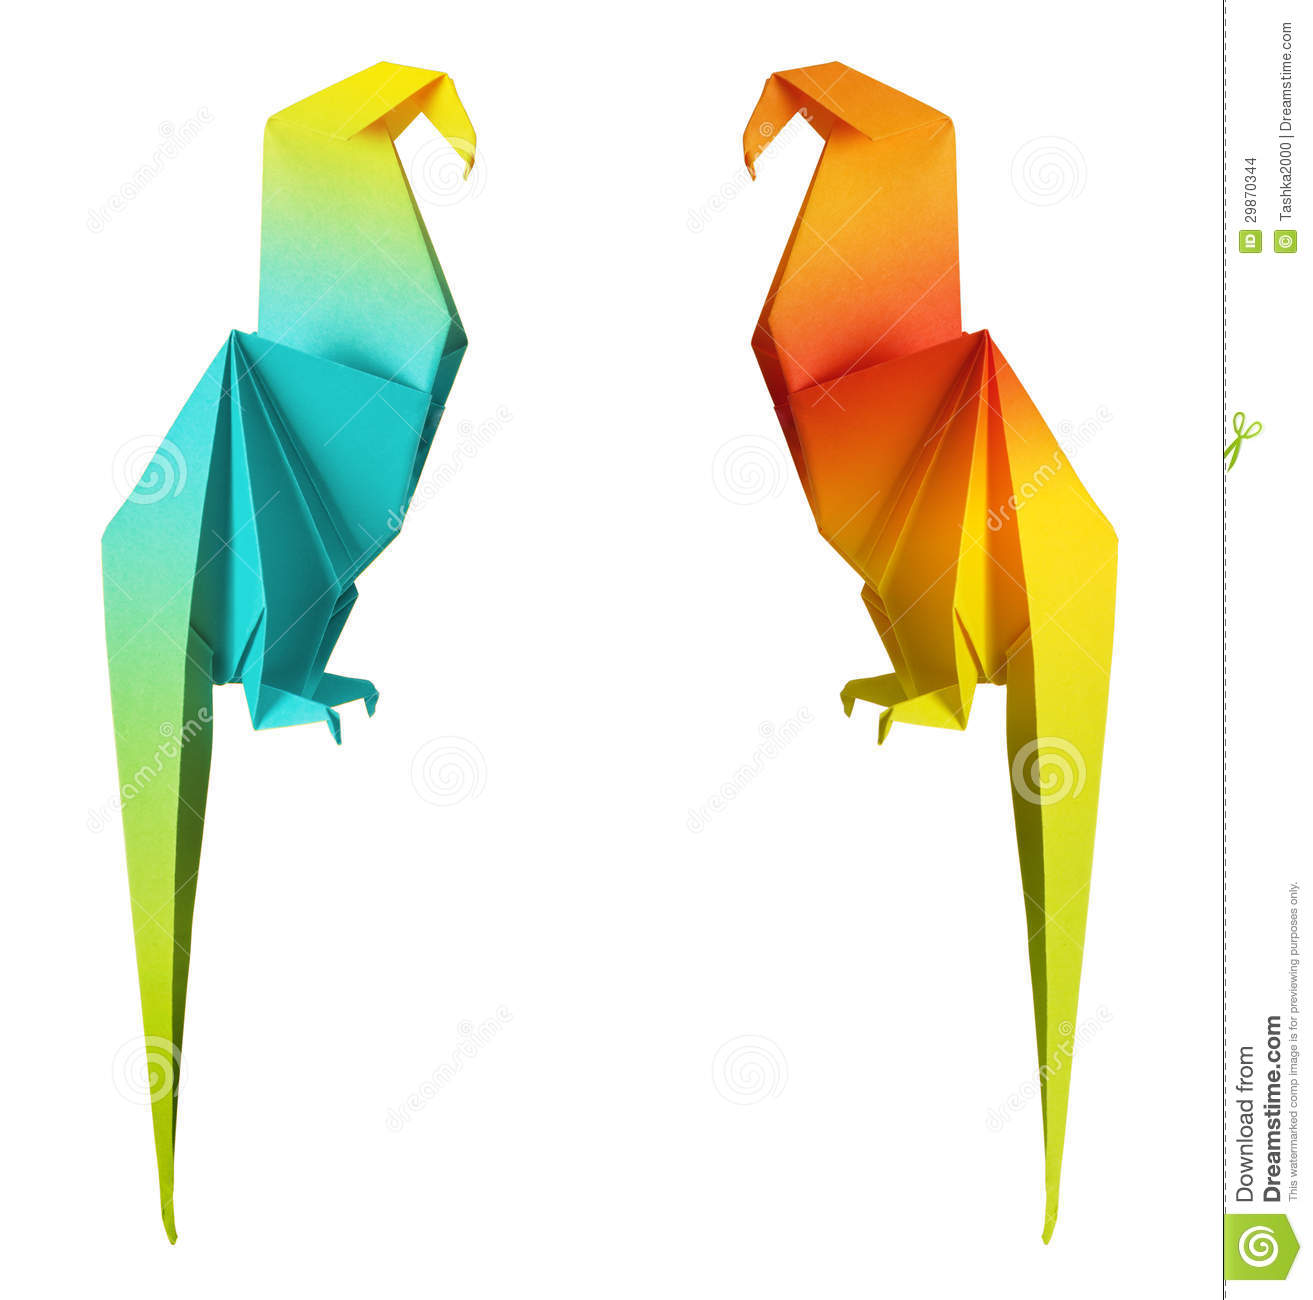 Origami parrot isolated on a white background.